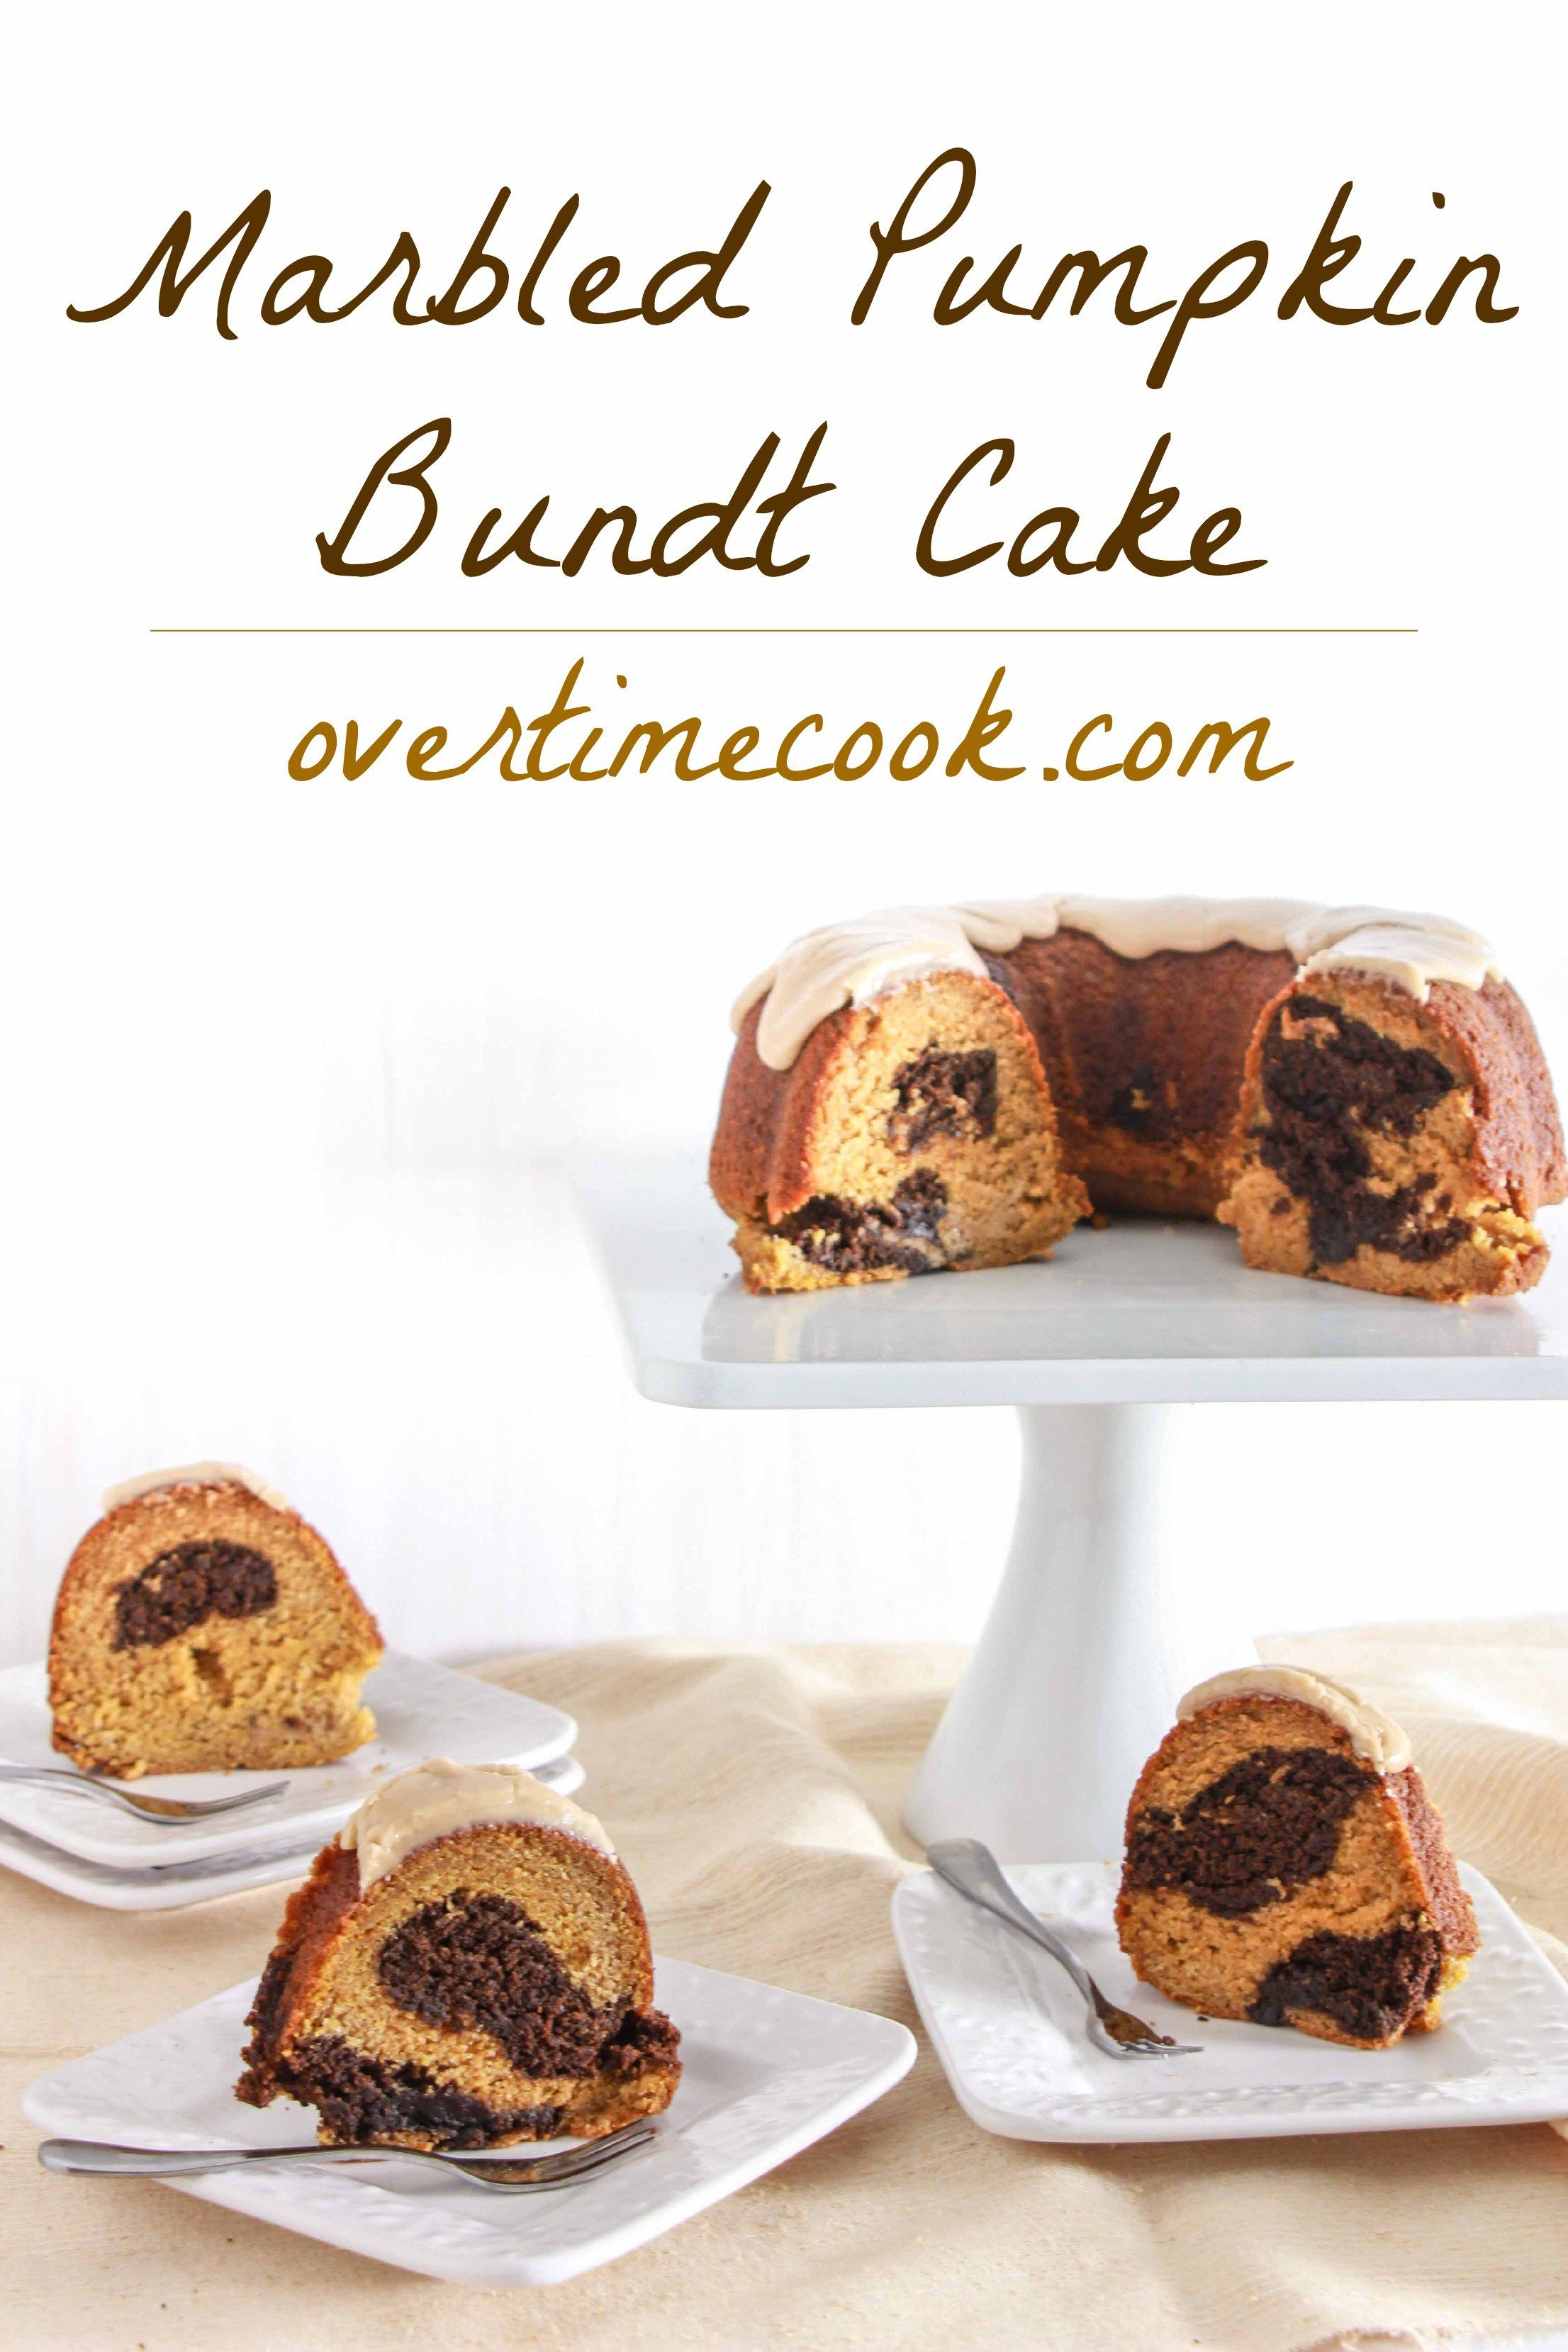 Marbled Pumpkin Bundt Cake on OvertimeCook - what a perfect Thanksgiving treat!